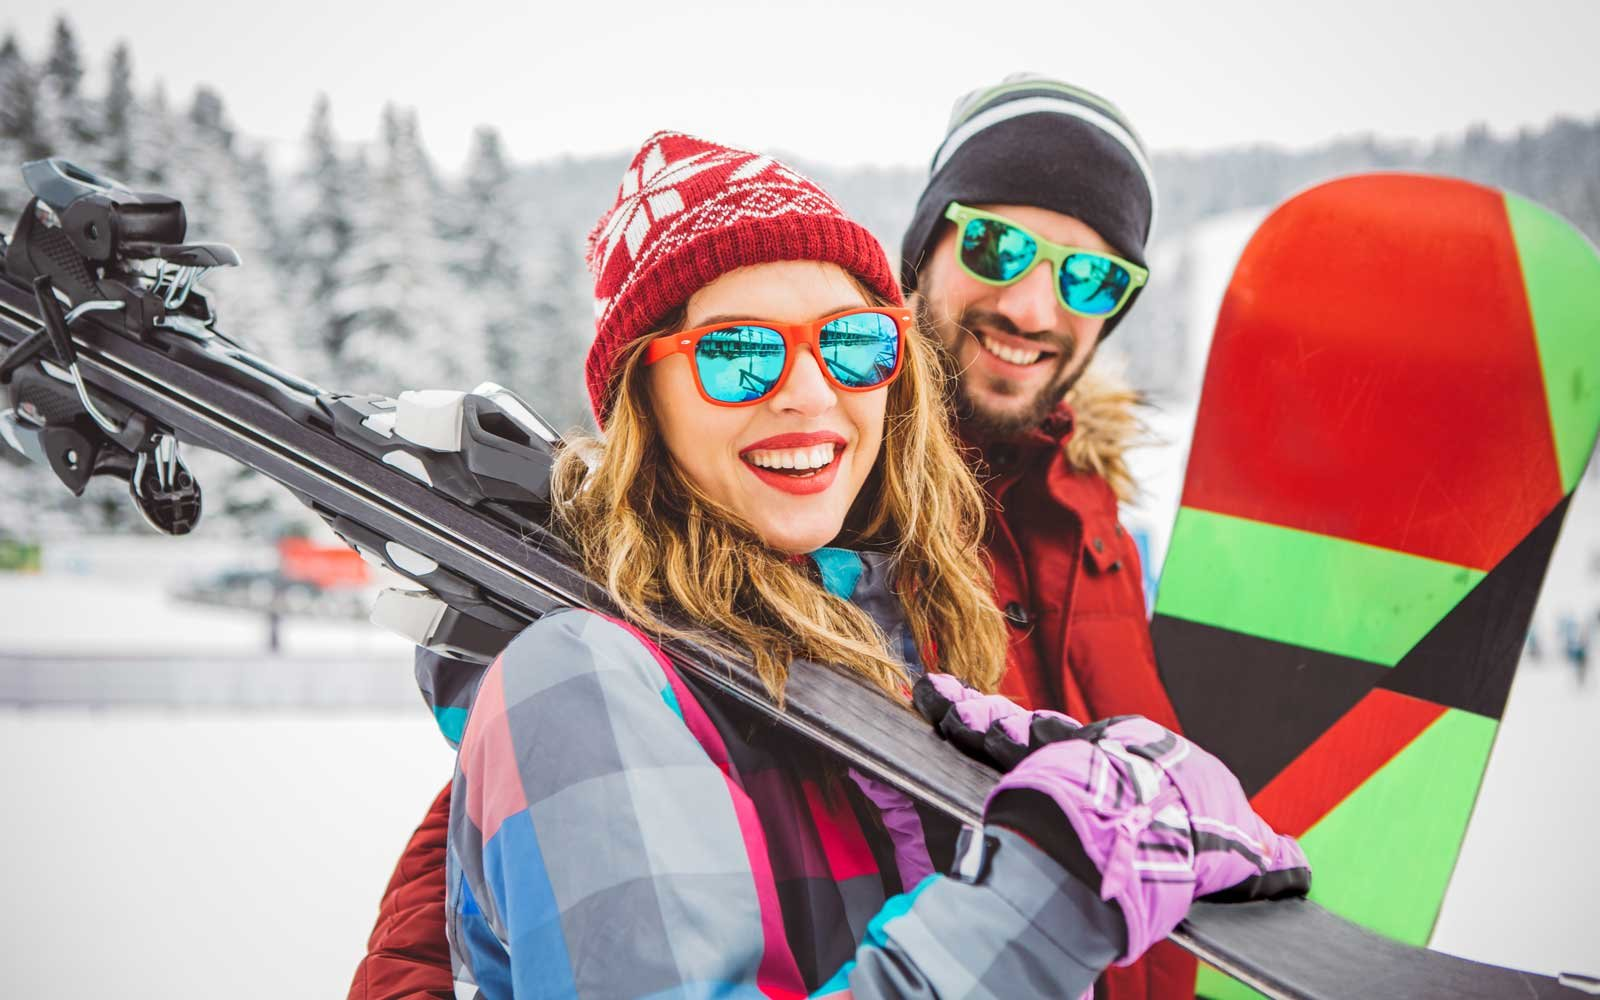 Couple skiing in brightly colored ski gear